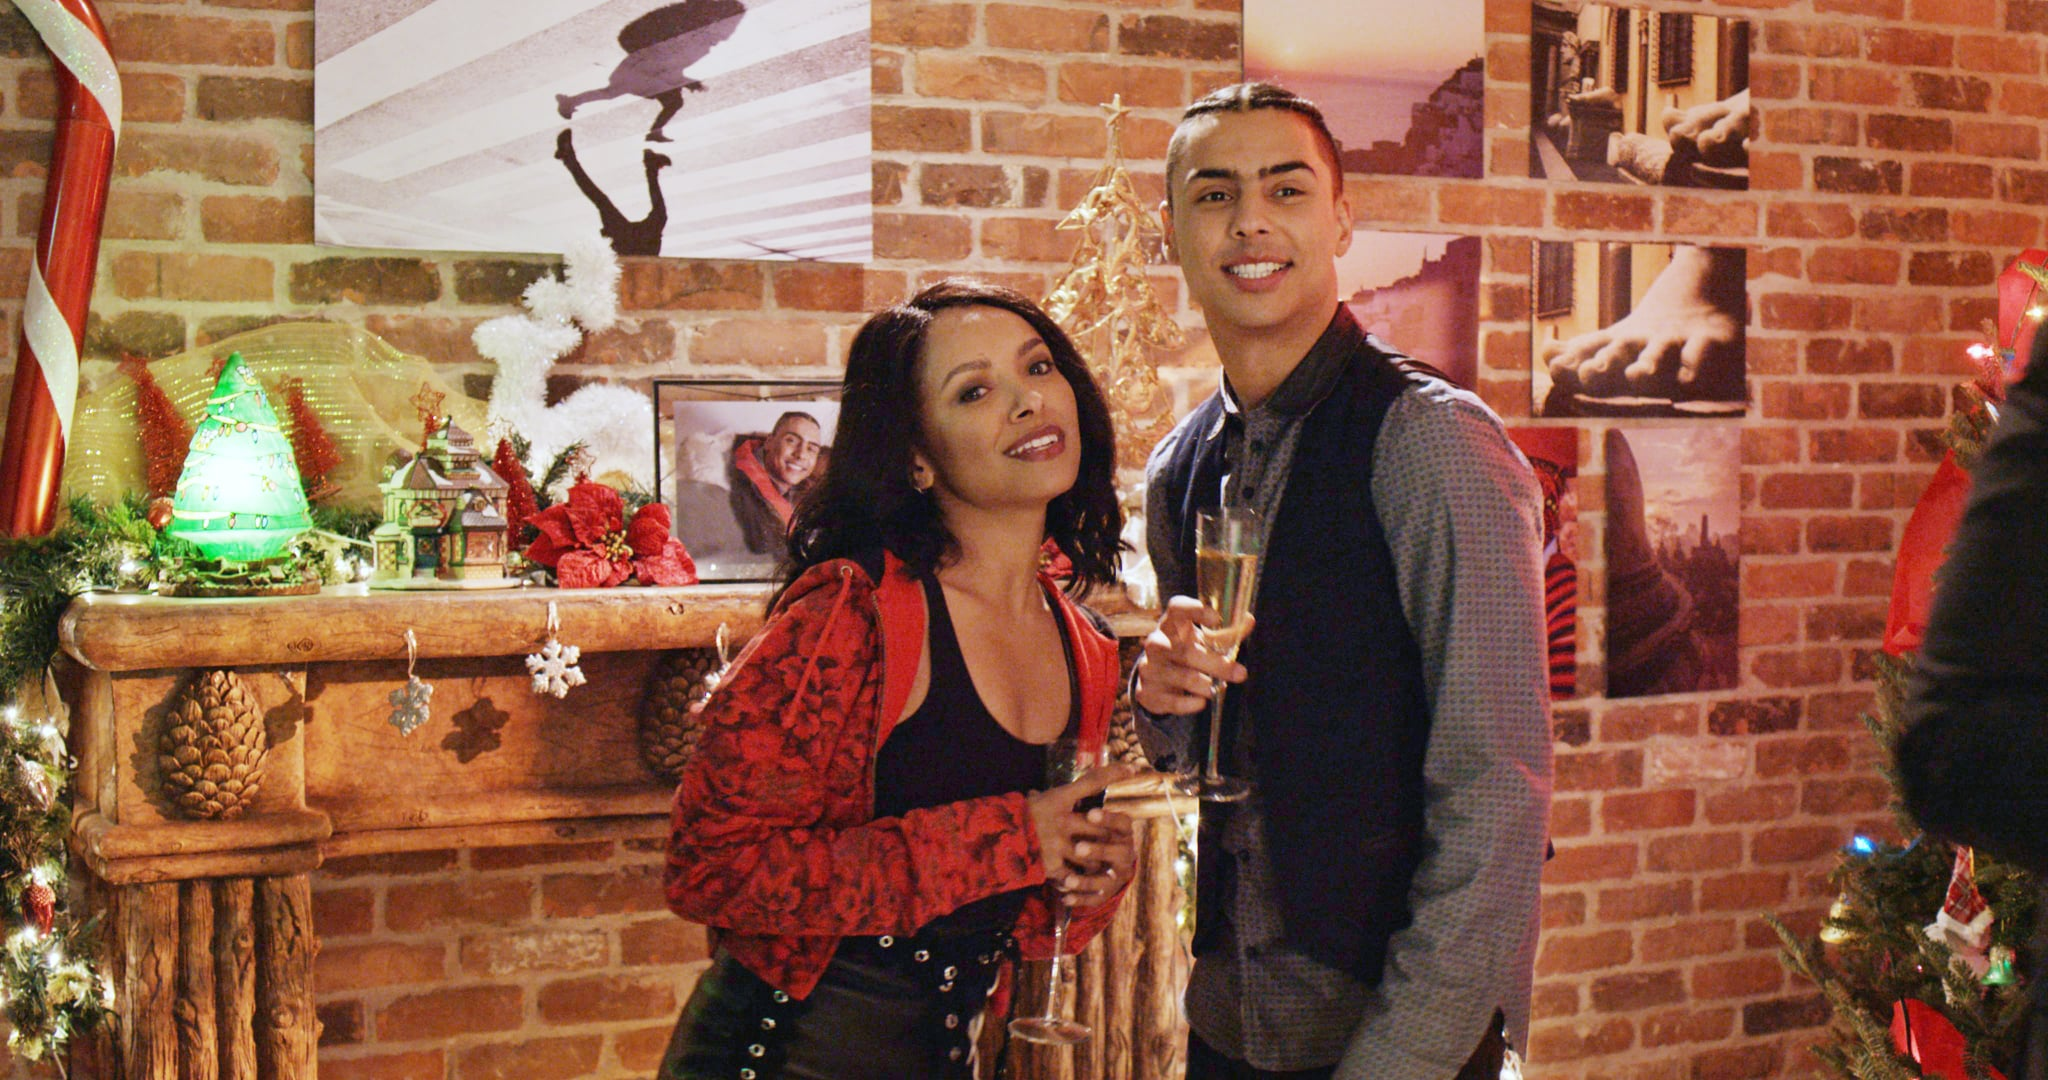 THE HOLIDAY CALENDAR, from left: Kat Graham, Quincy Brown, 2018.  Netflix /Courtesty Everett Collection